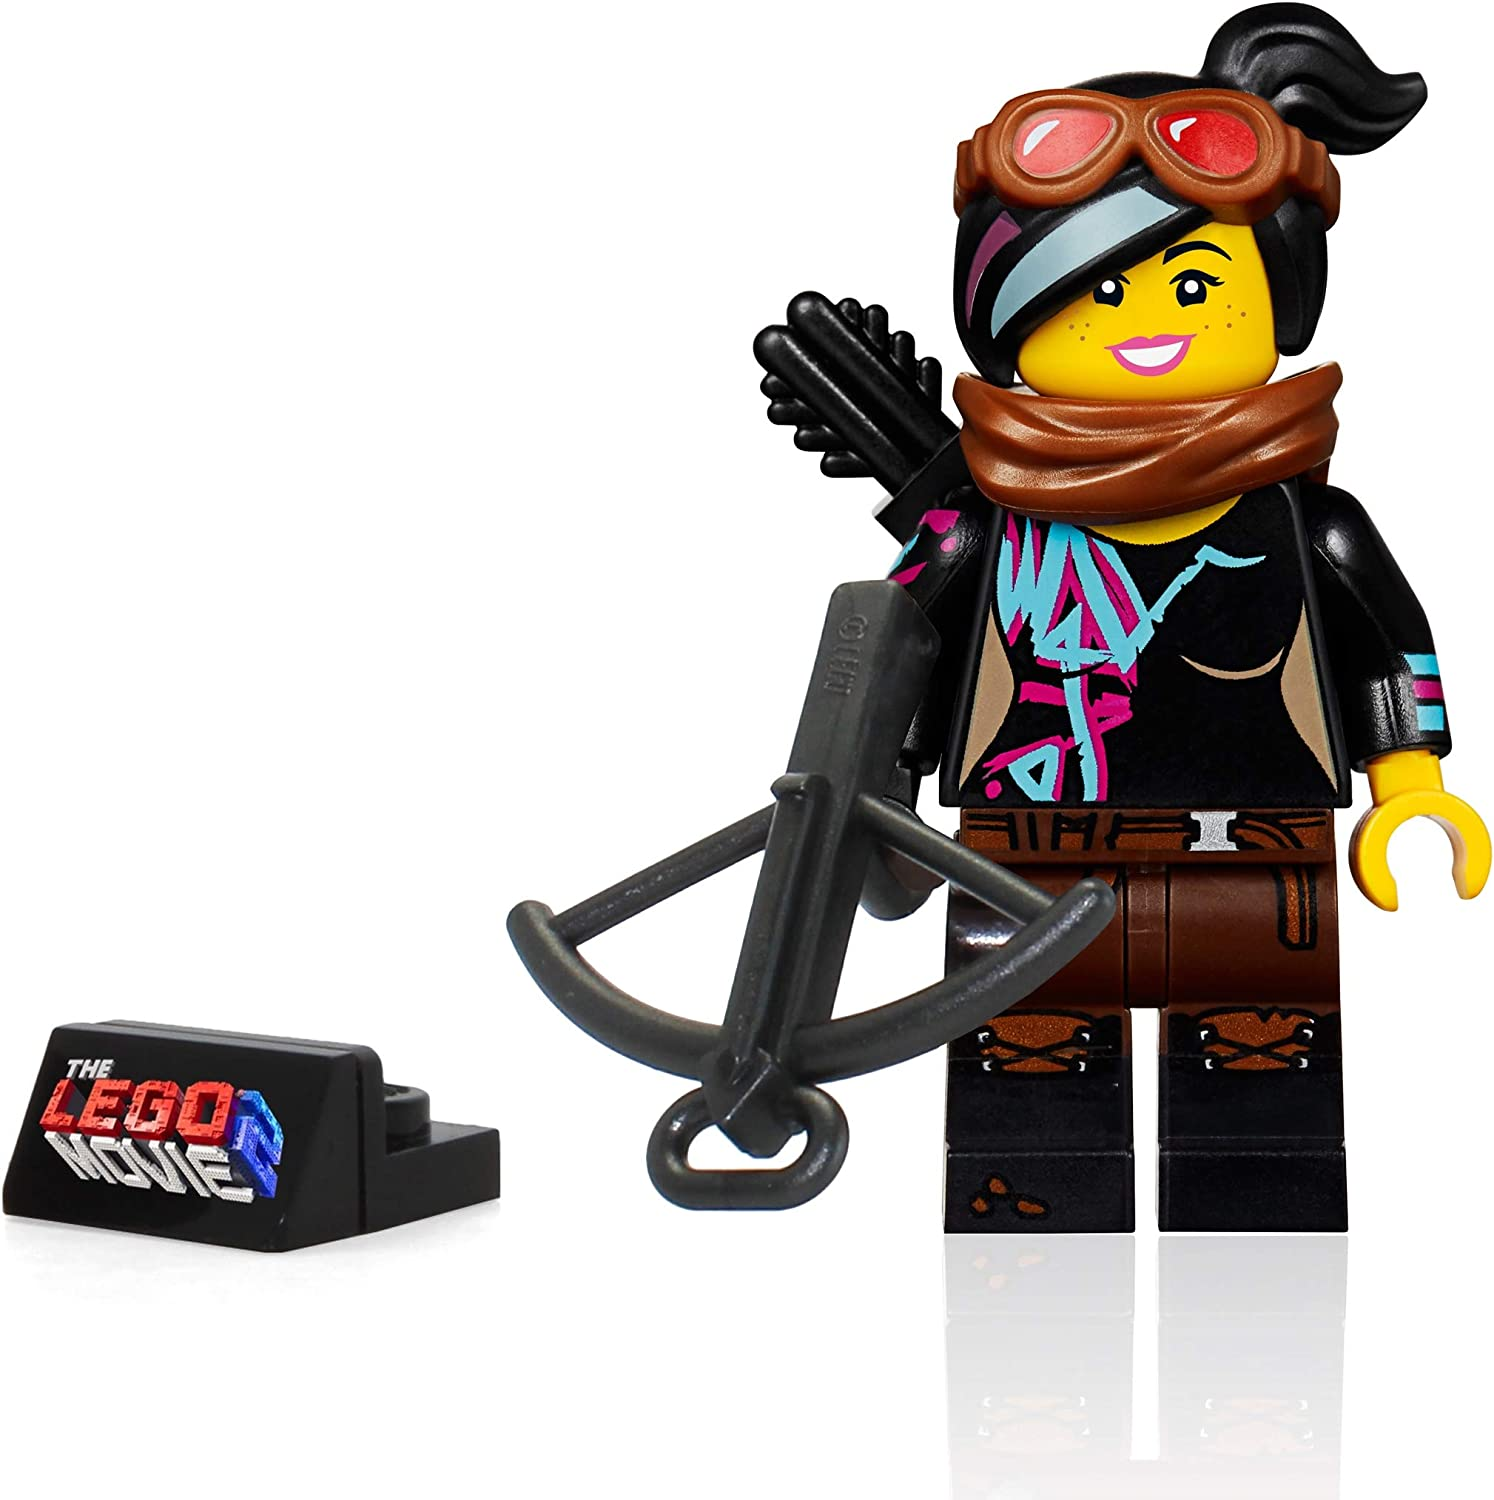 LEGO The Movie 2 Minifigure - Lucy Wyldstyle with Goggles (Crossbow and Display Stand)